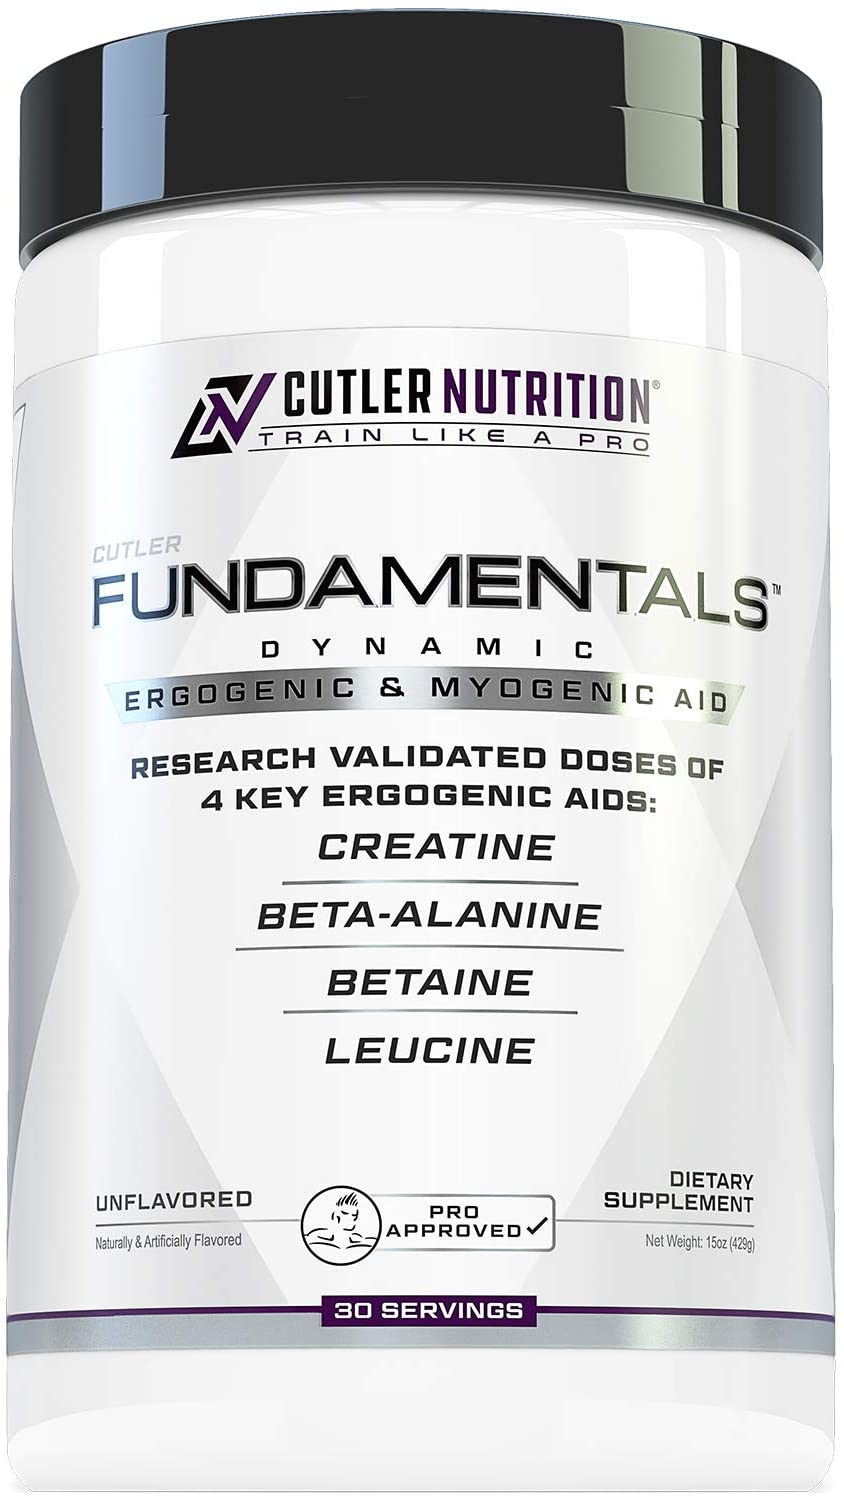 Fundamentals Intra or Post Workout Recovery Drink: 4 Key Ergogenic Aids for Maximum Performance and Muscle Growth: Creatine, Beta-Alanine, Betaine, and Leucine, 30 Servings, Unflavored